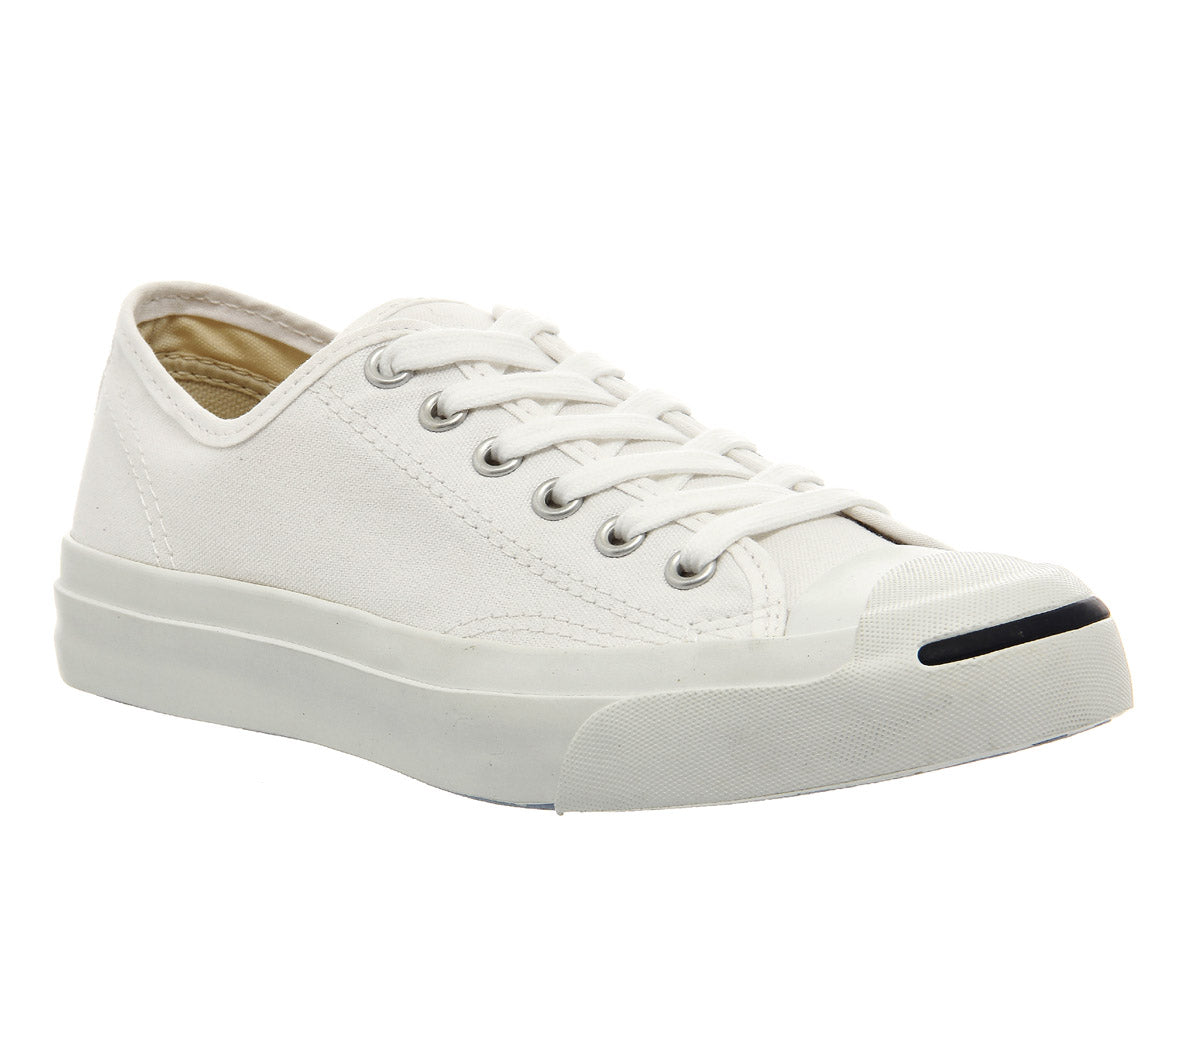 82cfbdb63264 Unisex Converse Jack Purcell LTT White Cream Canvas Trainers ...